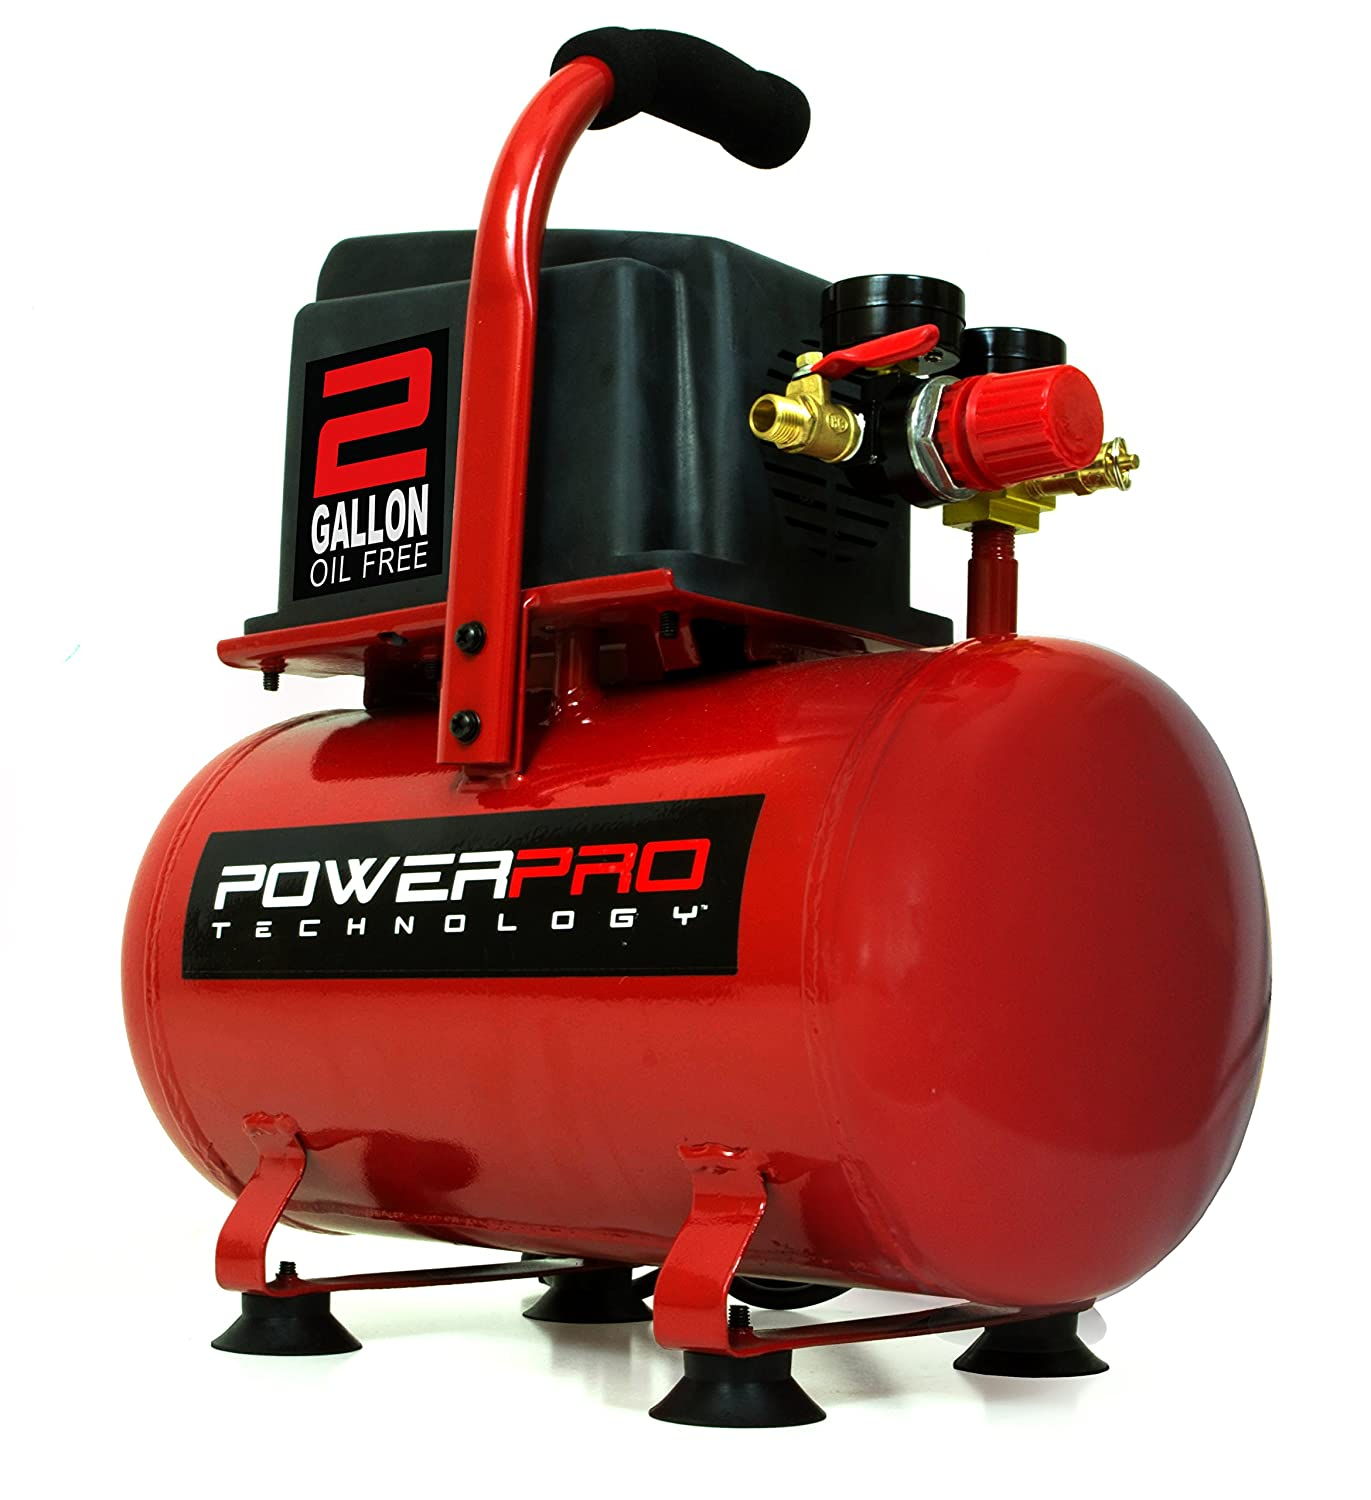 PowerPro 22020 2 Gallon Oil Free Air Compressor Great Lakes Tool MFG INC